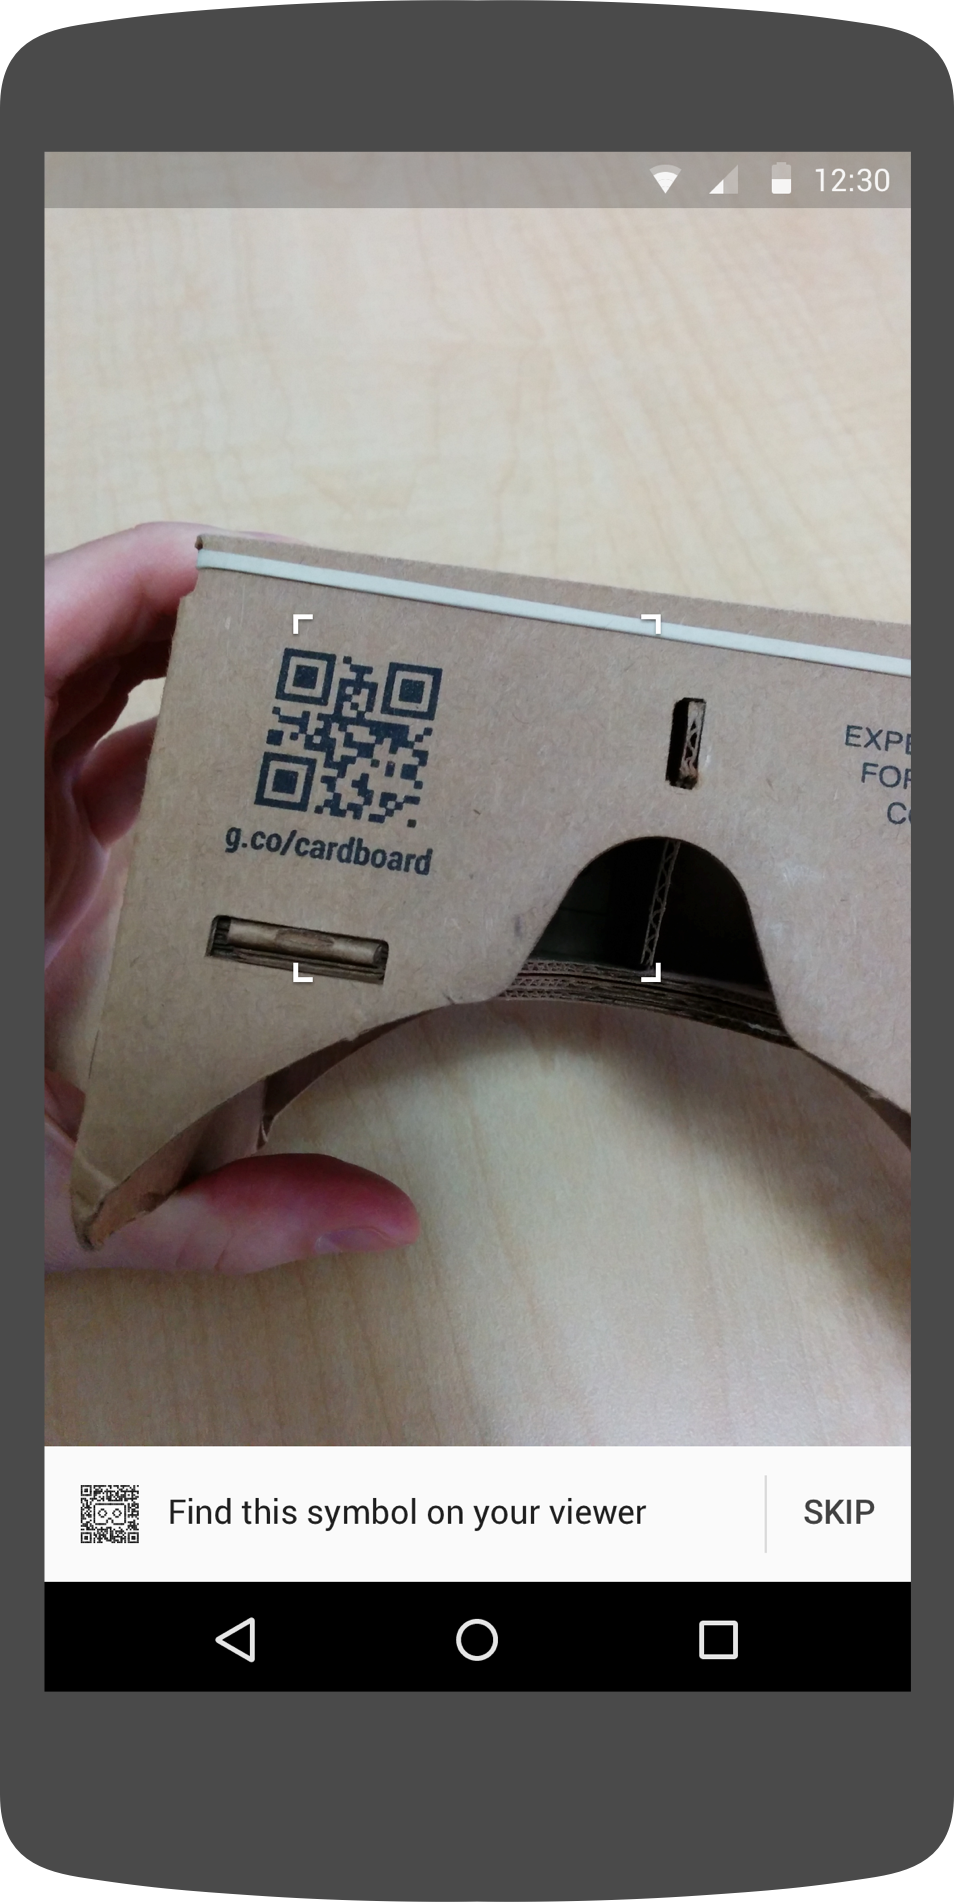 Pairing: Scan the QR code on your viewer